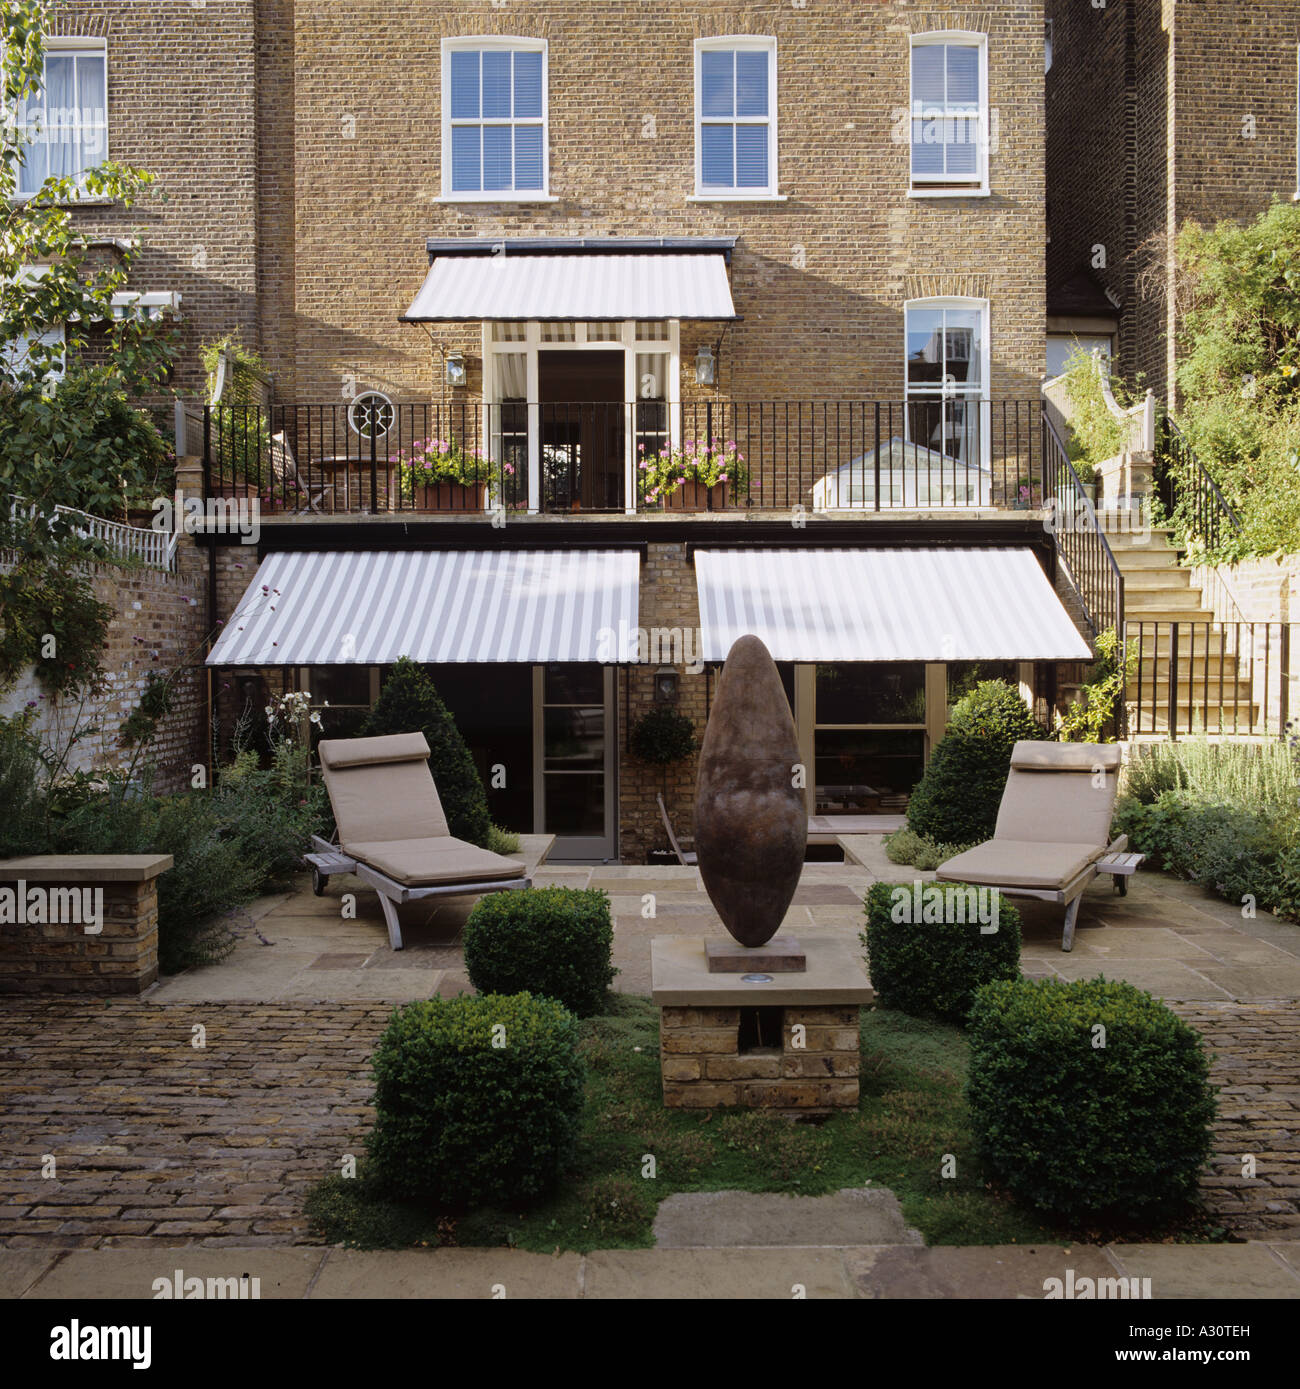 A Modern Garden Of A London Townhouse With Awnings And Sun